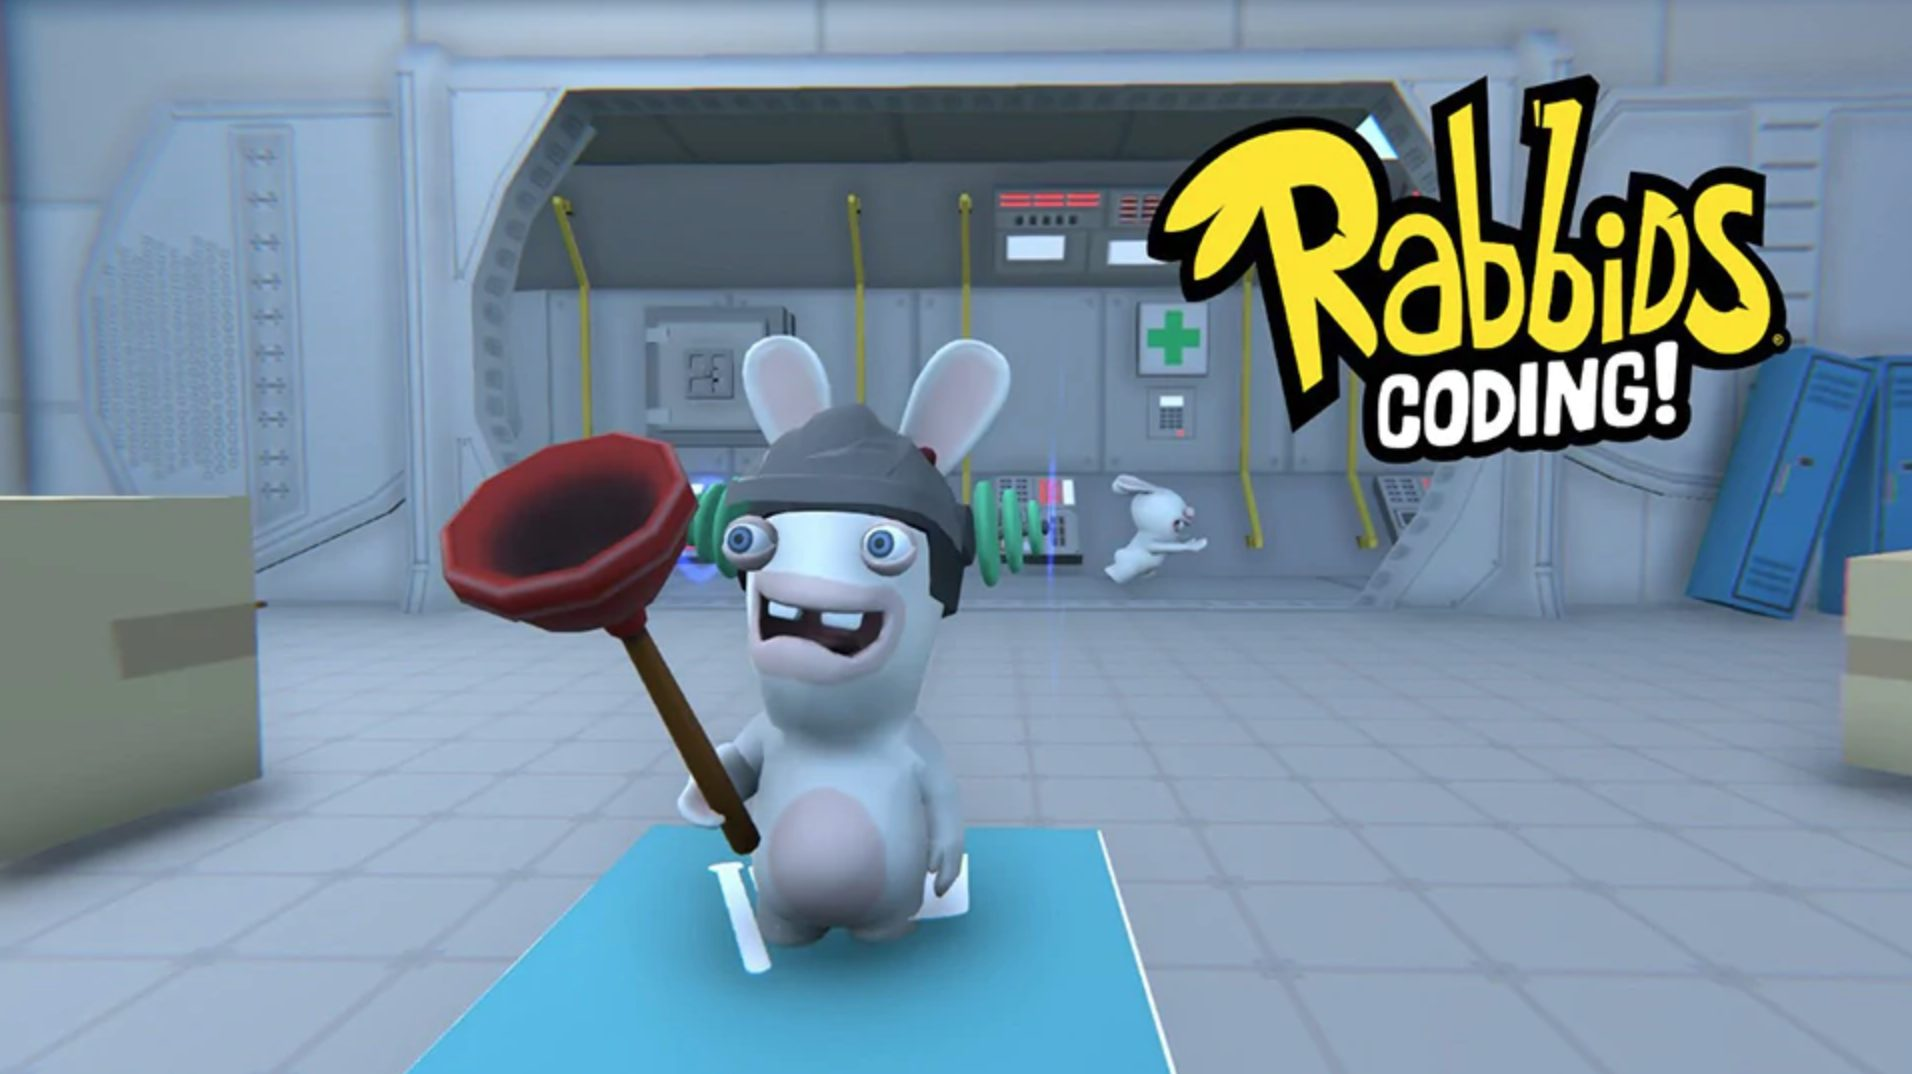 'Rabbids Coding' – A free game that teaches programming basics